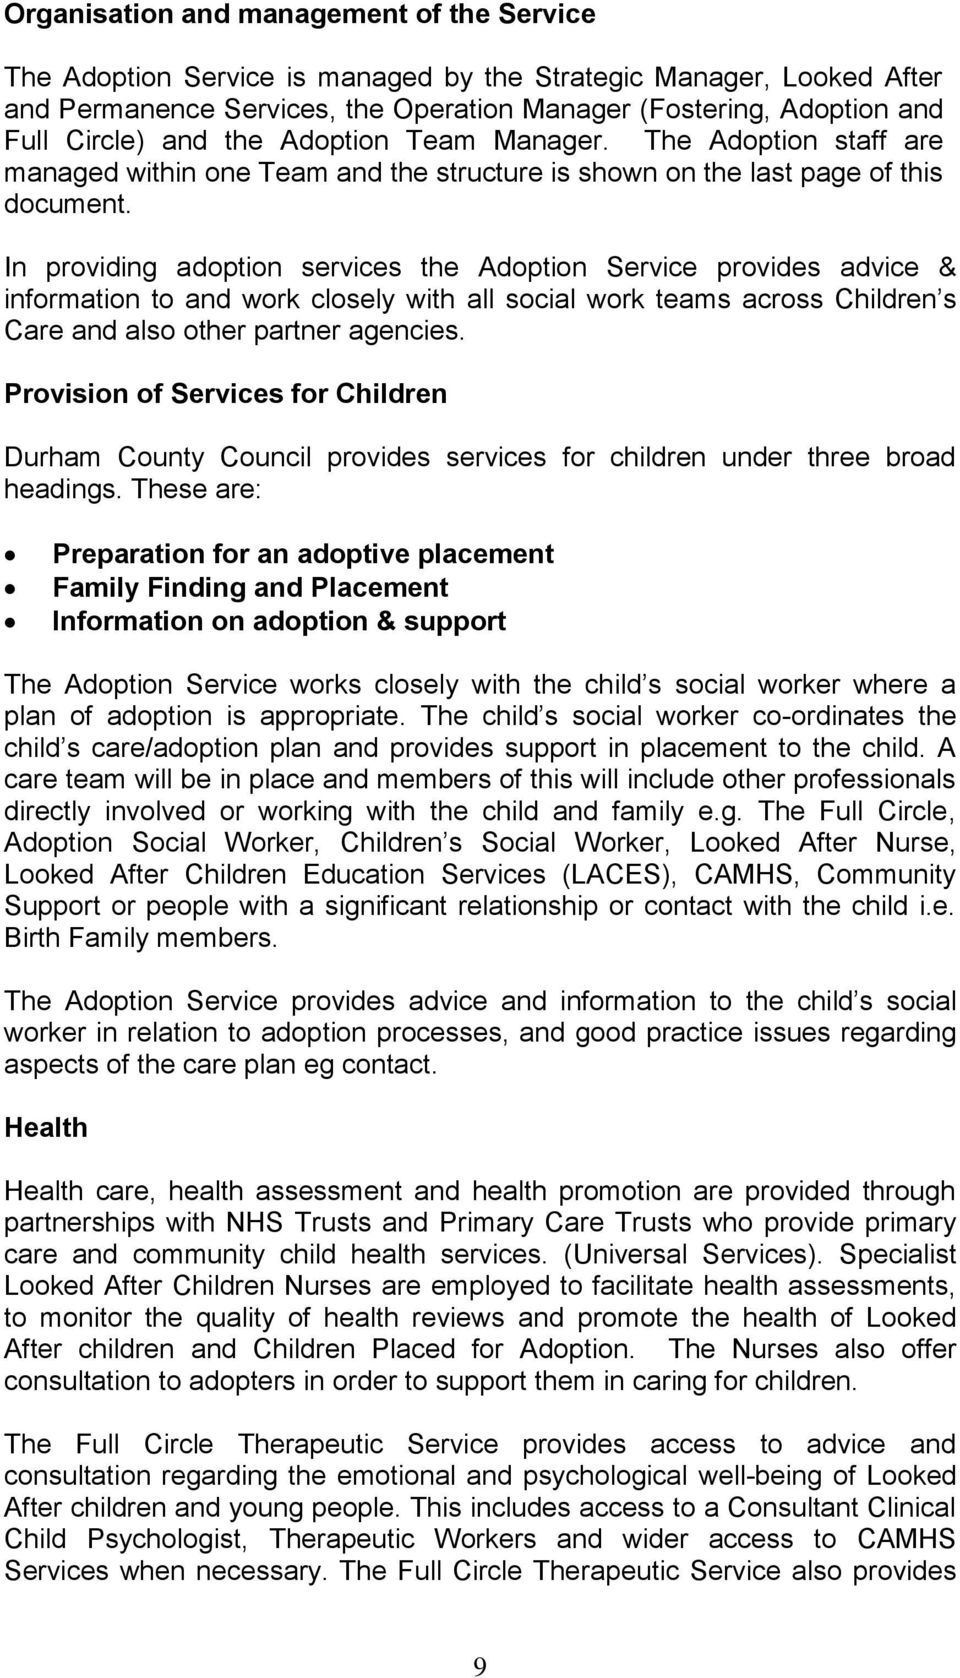 In providing adoption services the Adoption Service provides advice & information to and work closely with all social work teams across Children s Care and also other partner agencies.